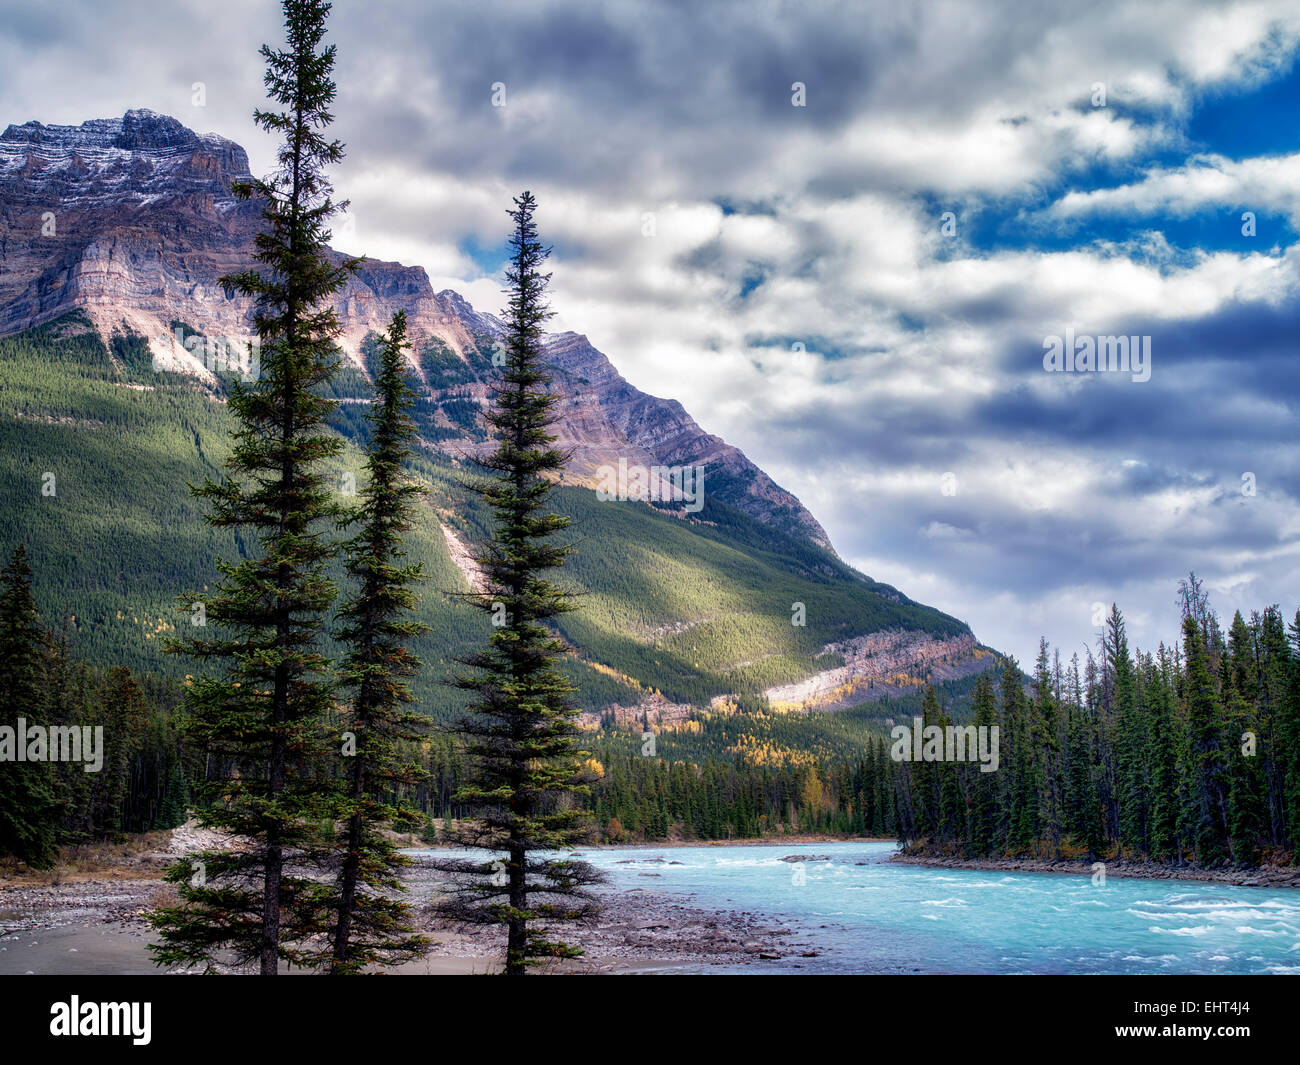 Athebasca River and mountain. Jasper National Park, Alberta, Canada - Stock Image